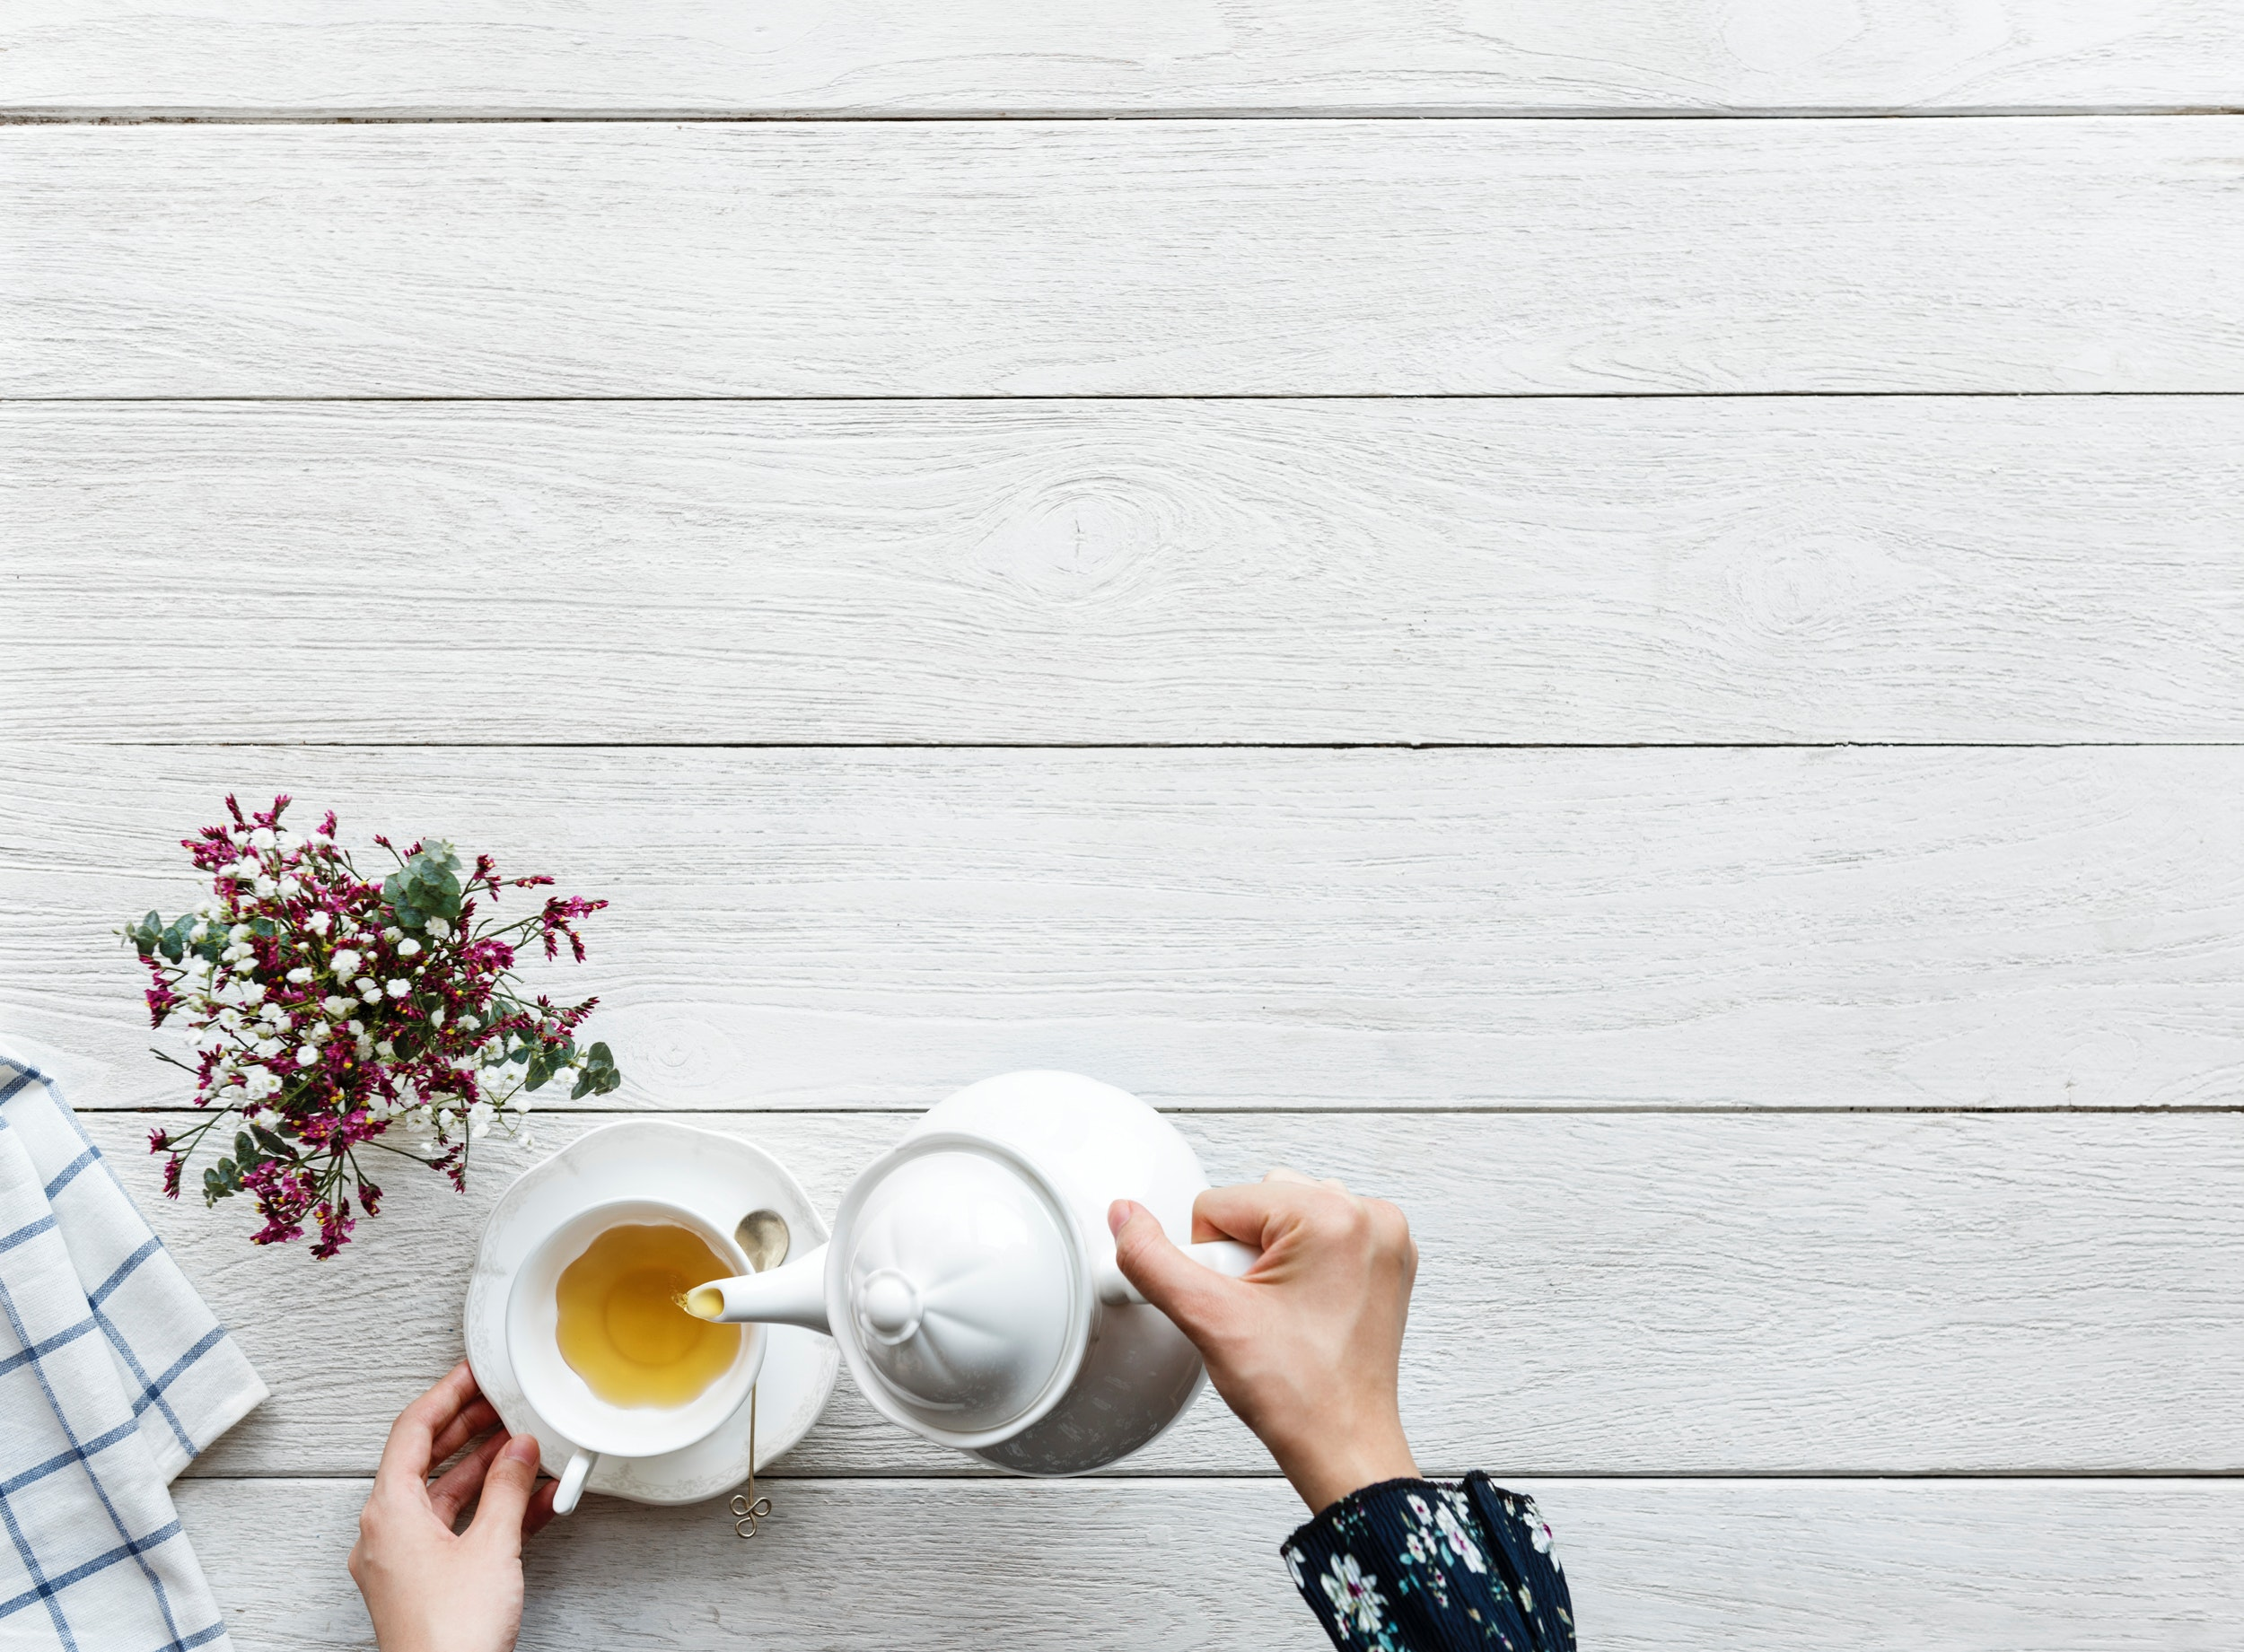 Self-care for writers: Hands pouring tea from a teapot into a teacup. flowers are to the left of the hands.